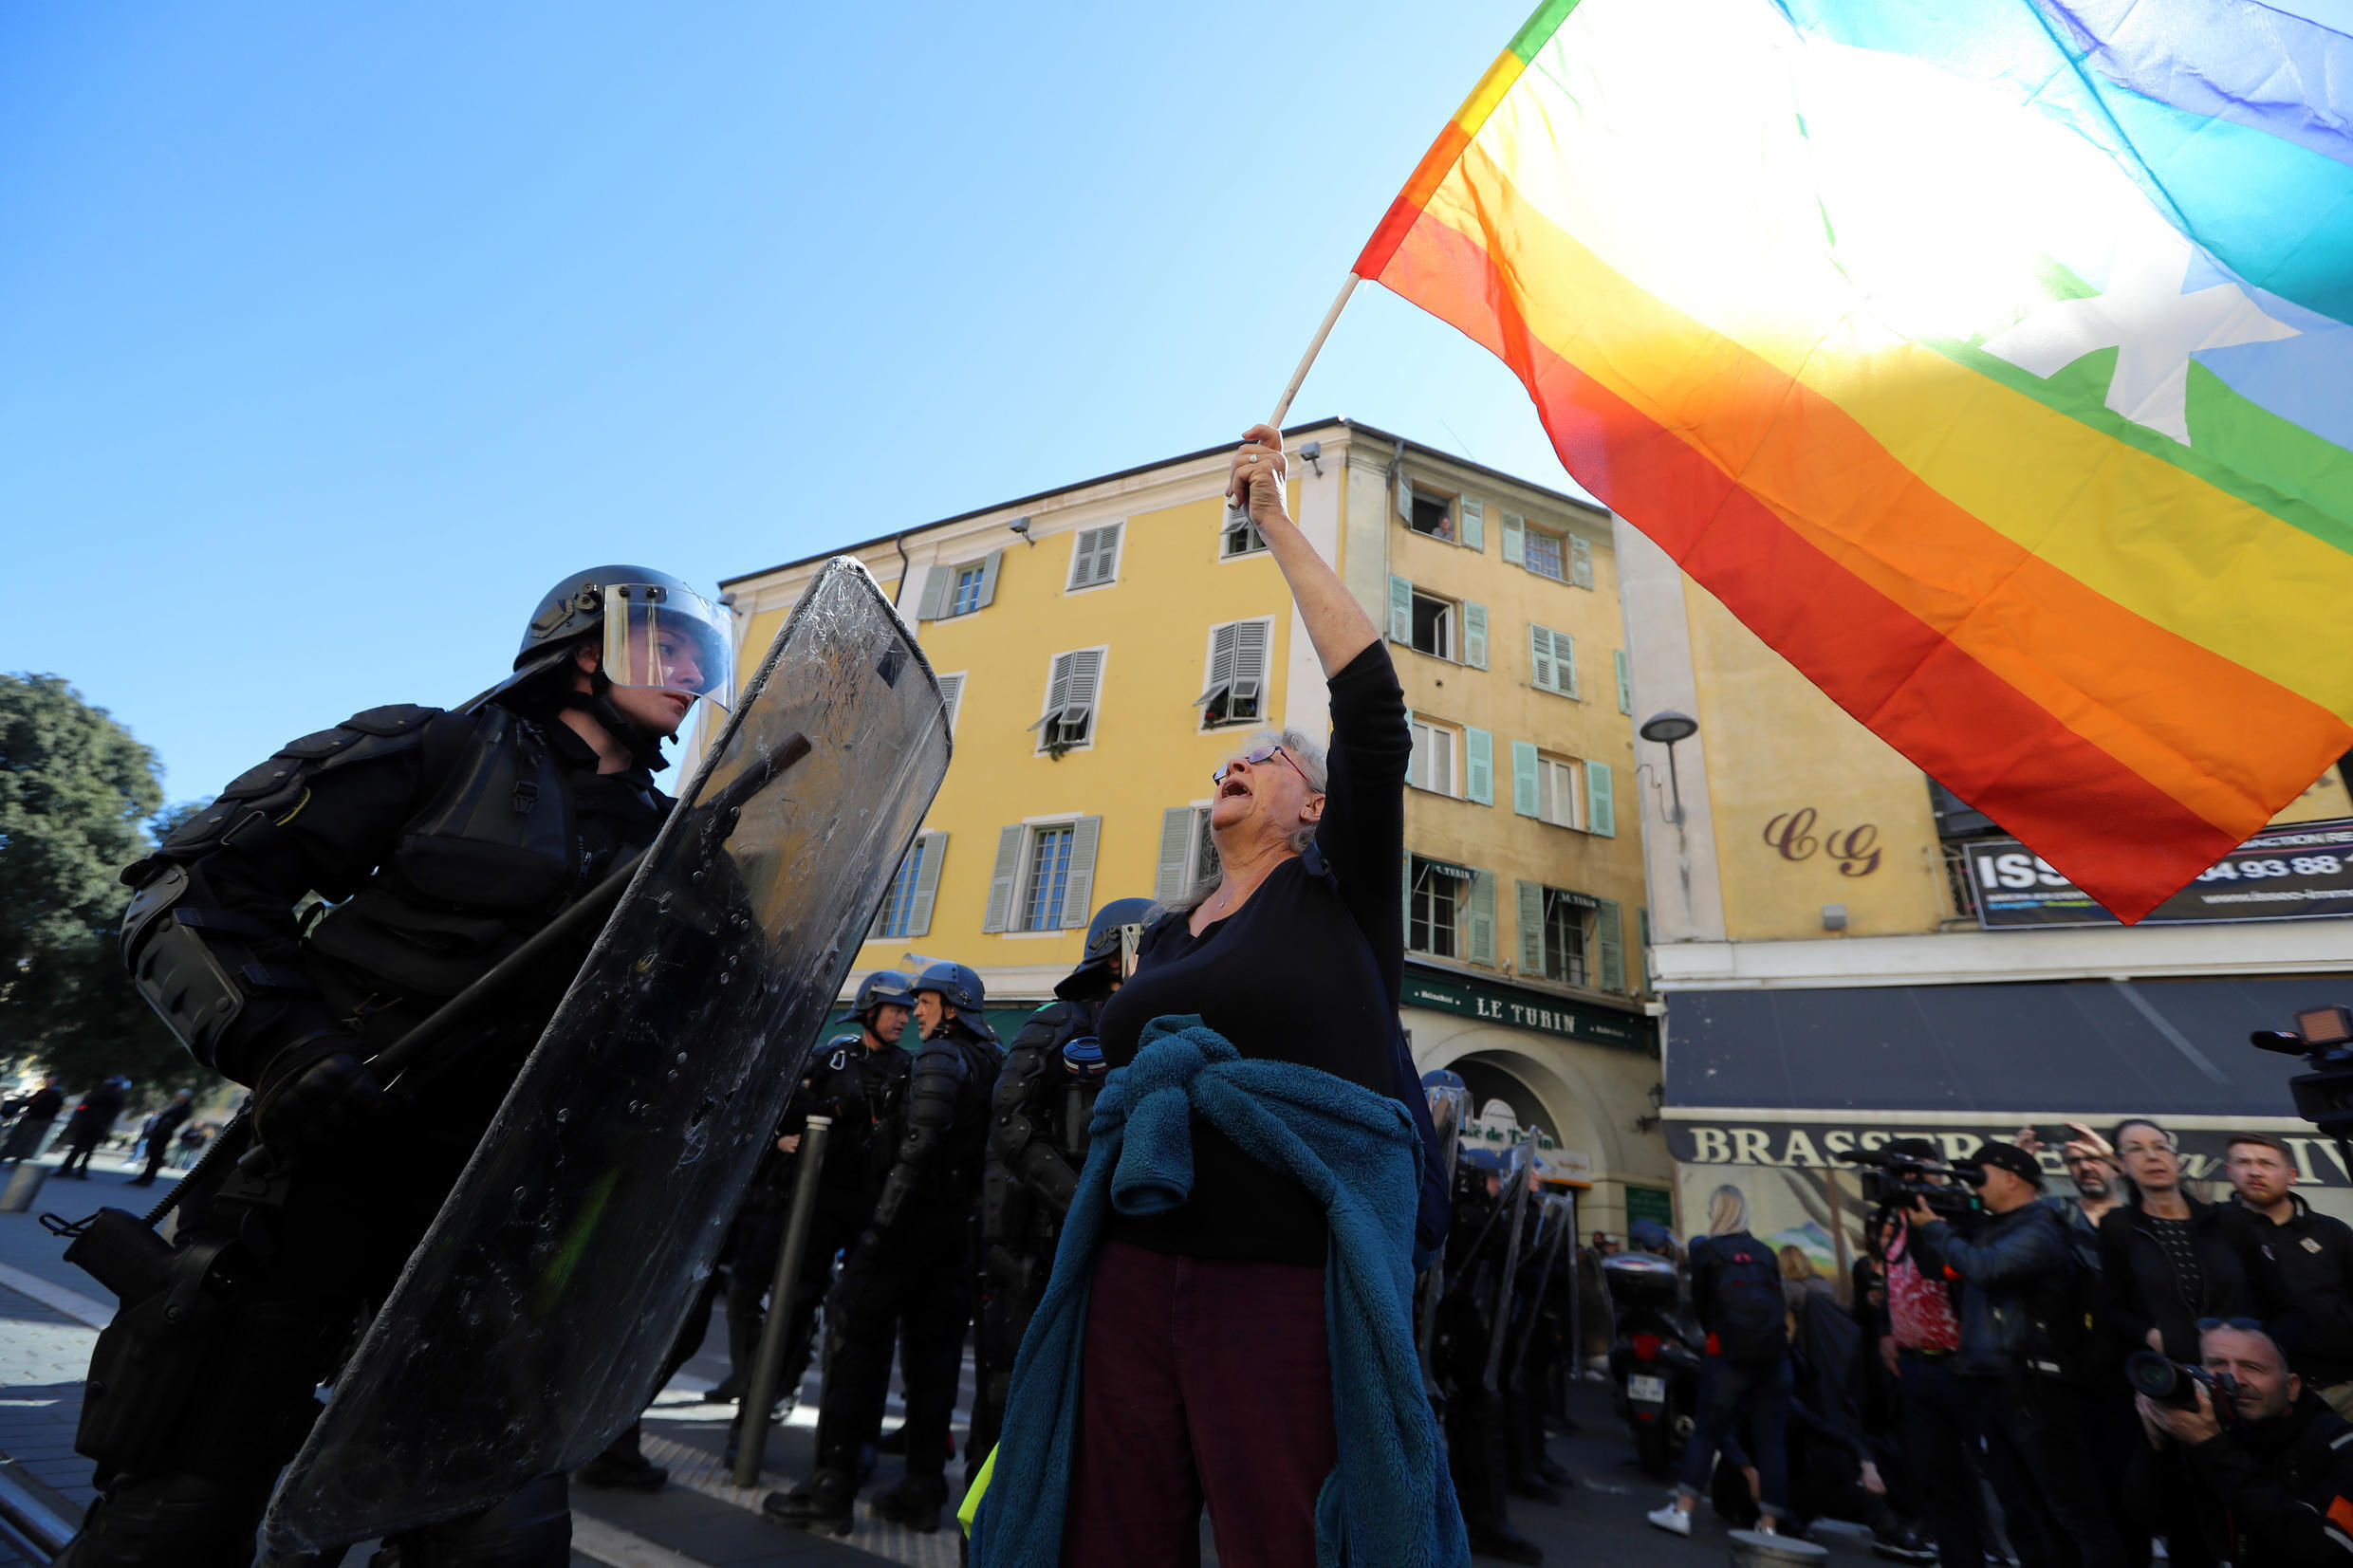 """Genevieve Legay, an Attac activtist, waves a coloured flag during a rally by the anti-government """"Yellow Vests"""" (Gilets jaunes) movement in the city of Nice, southeastern France, on March 23, 2019. Thousands of police fanned out across central Paris, Toulo"""